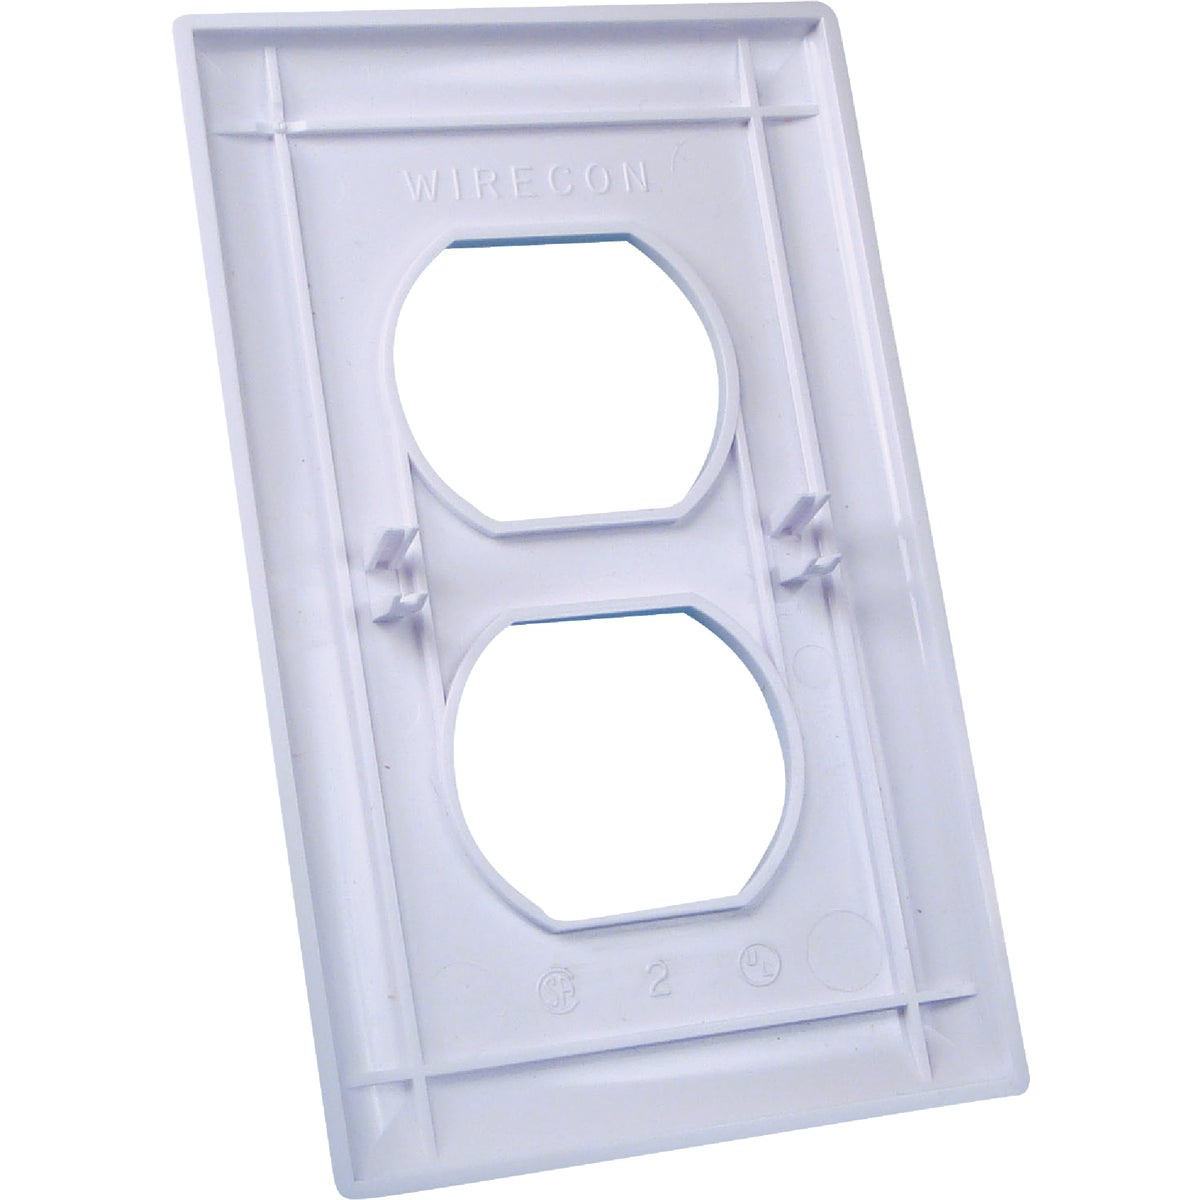 WH RECEPTACLE GANG PLATE